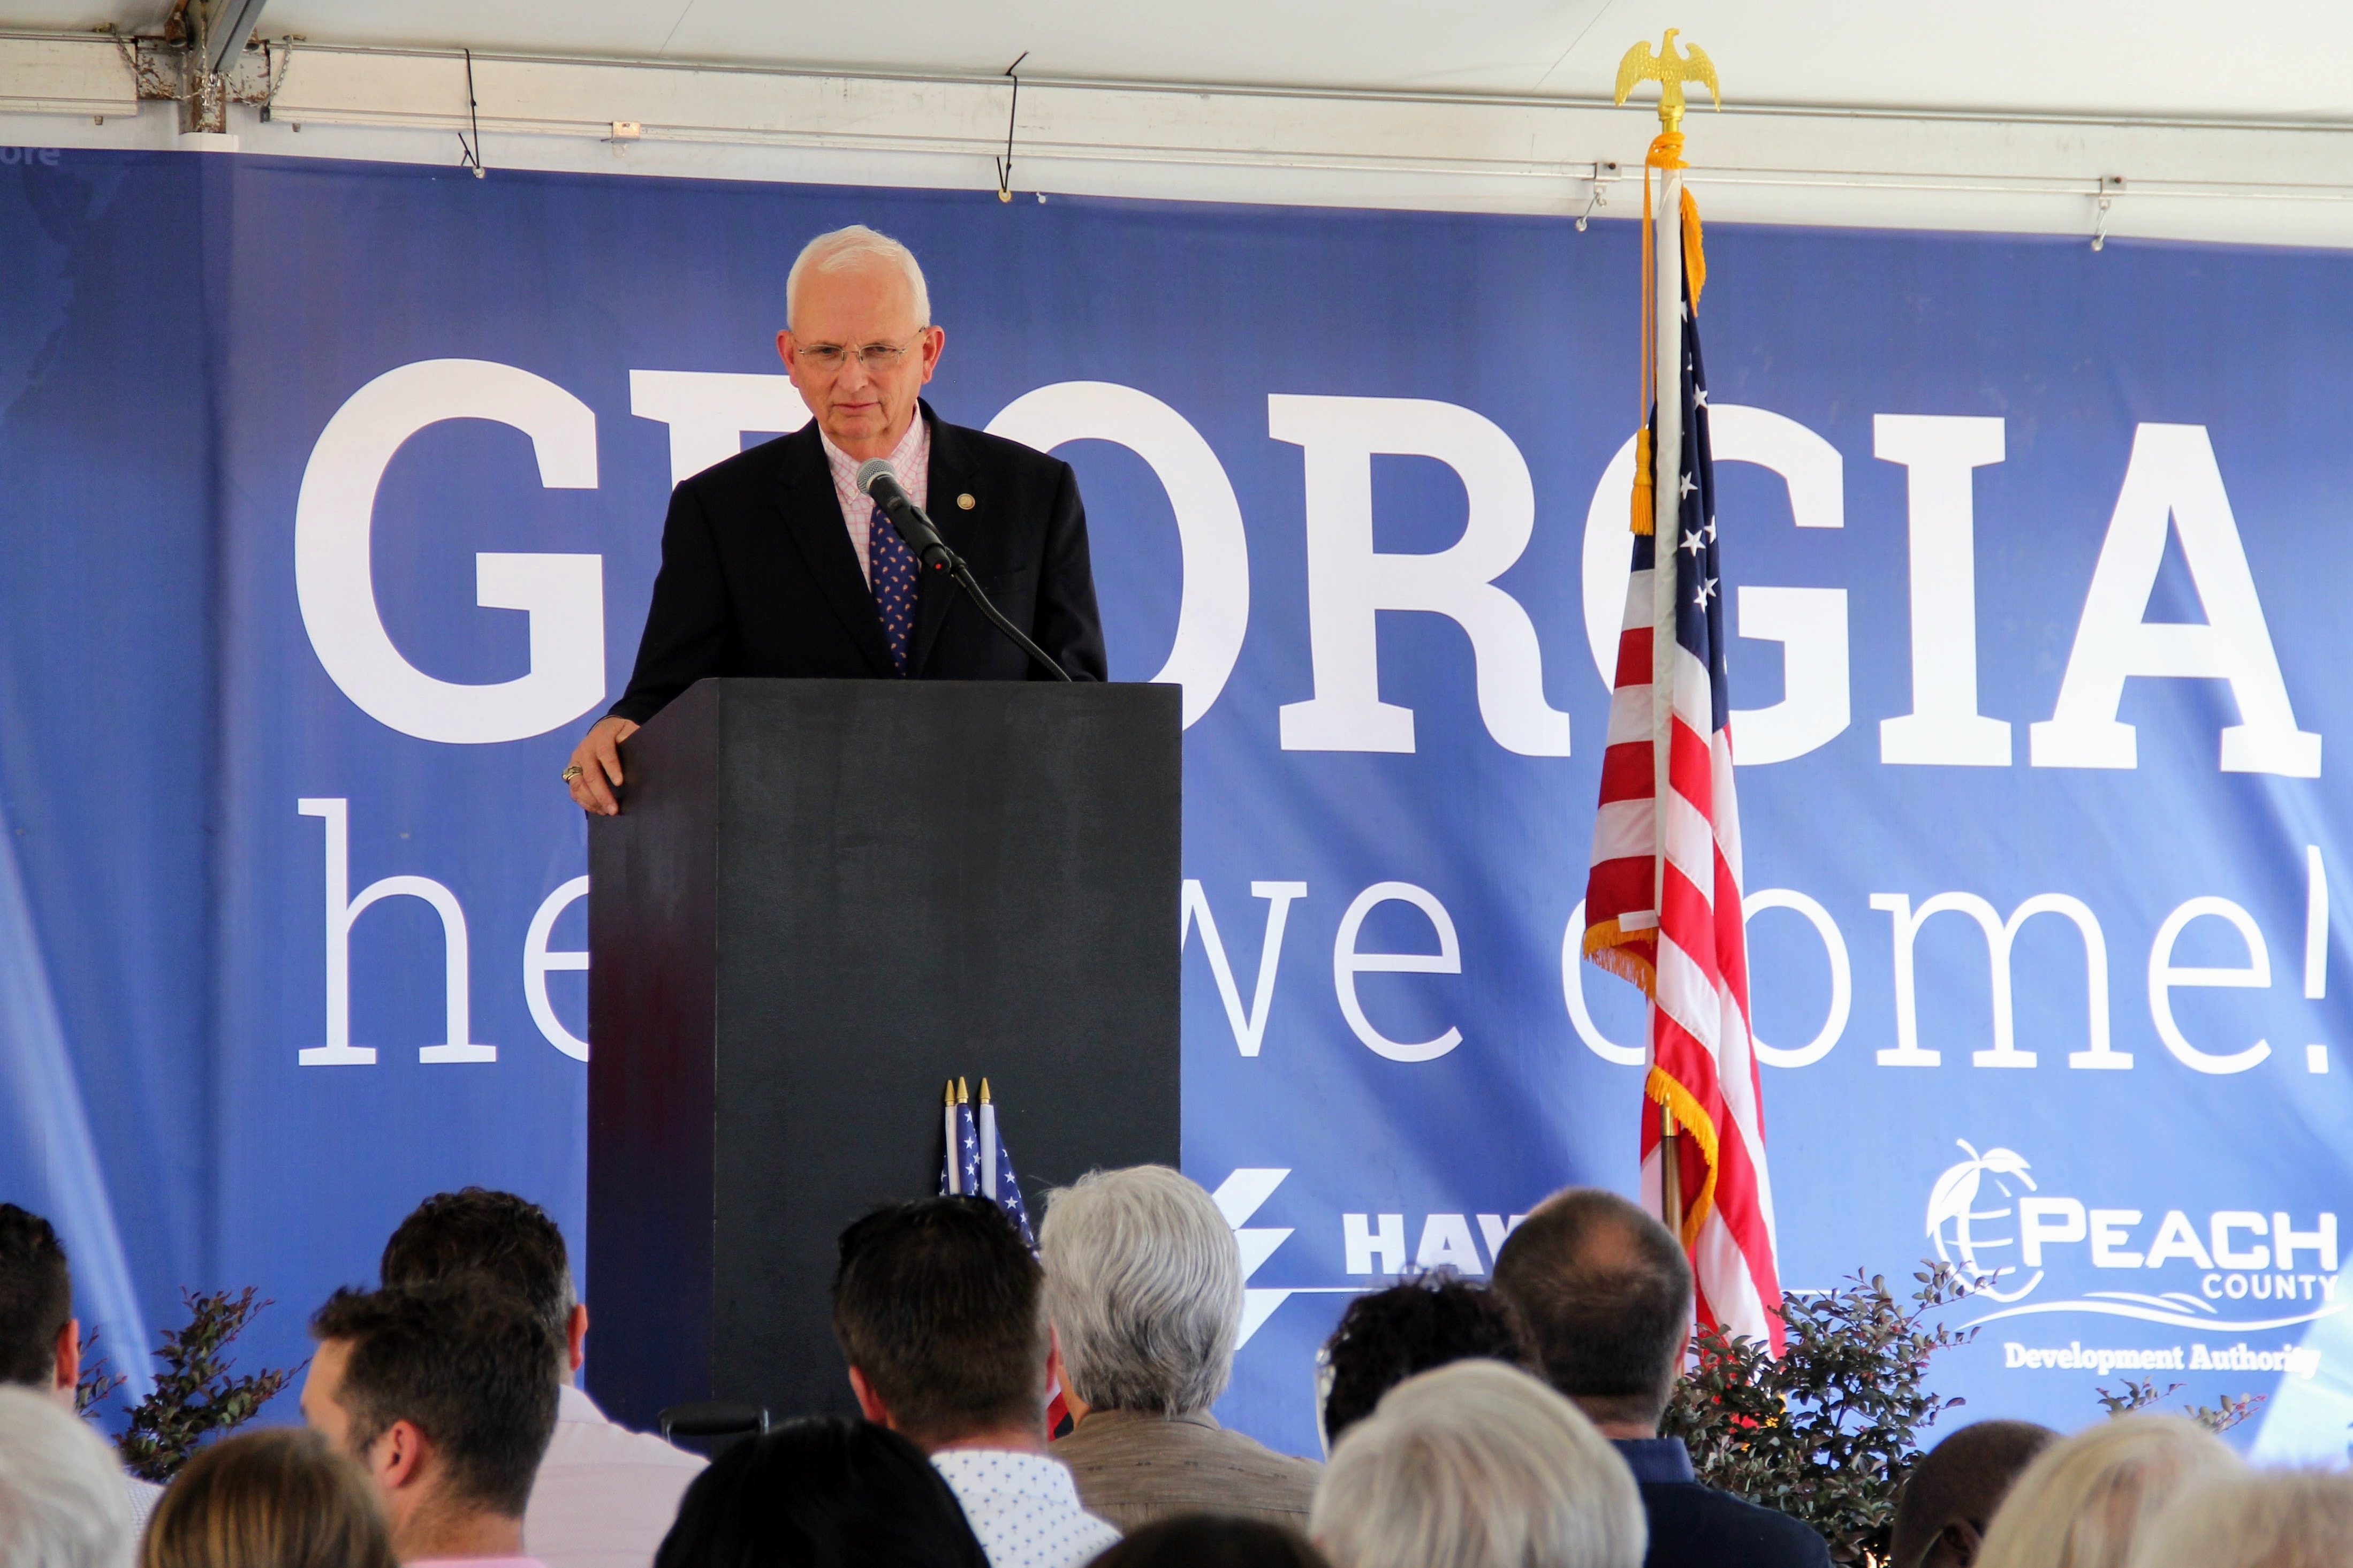 Commissioner Gary Black of the Georgia Department of Agriculture, shares a few words at the Ground Breaking Ceremony for Pure Flavor in Peach County, Georgia.